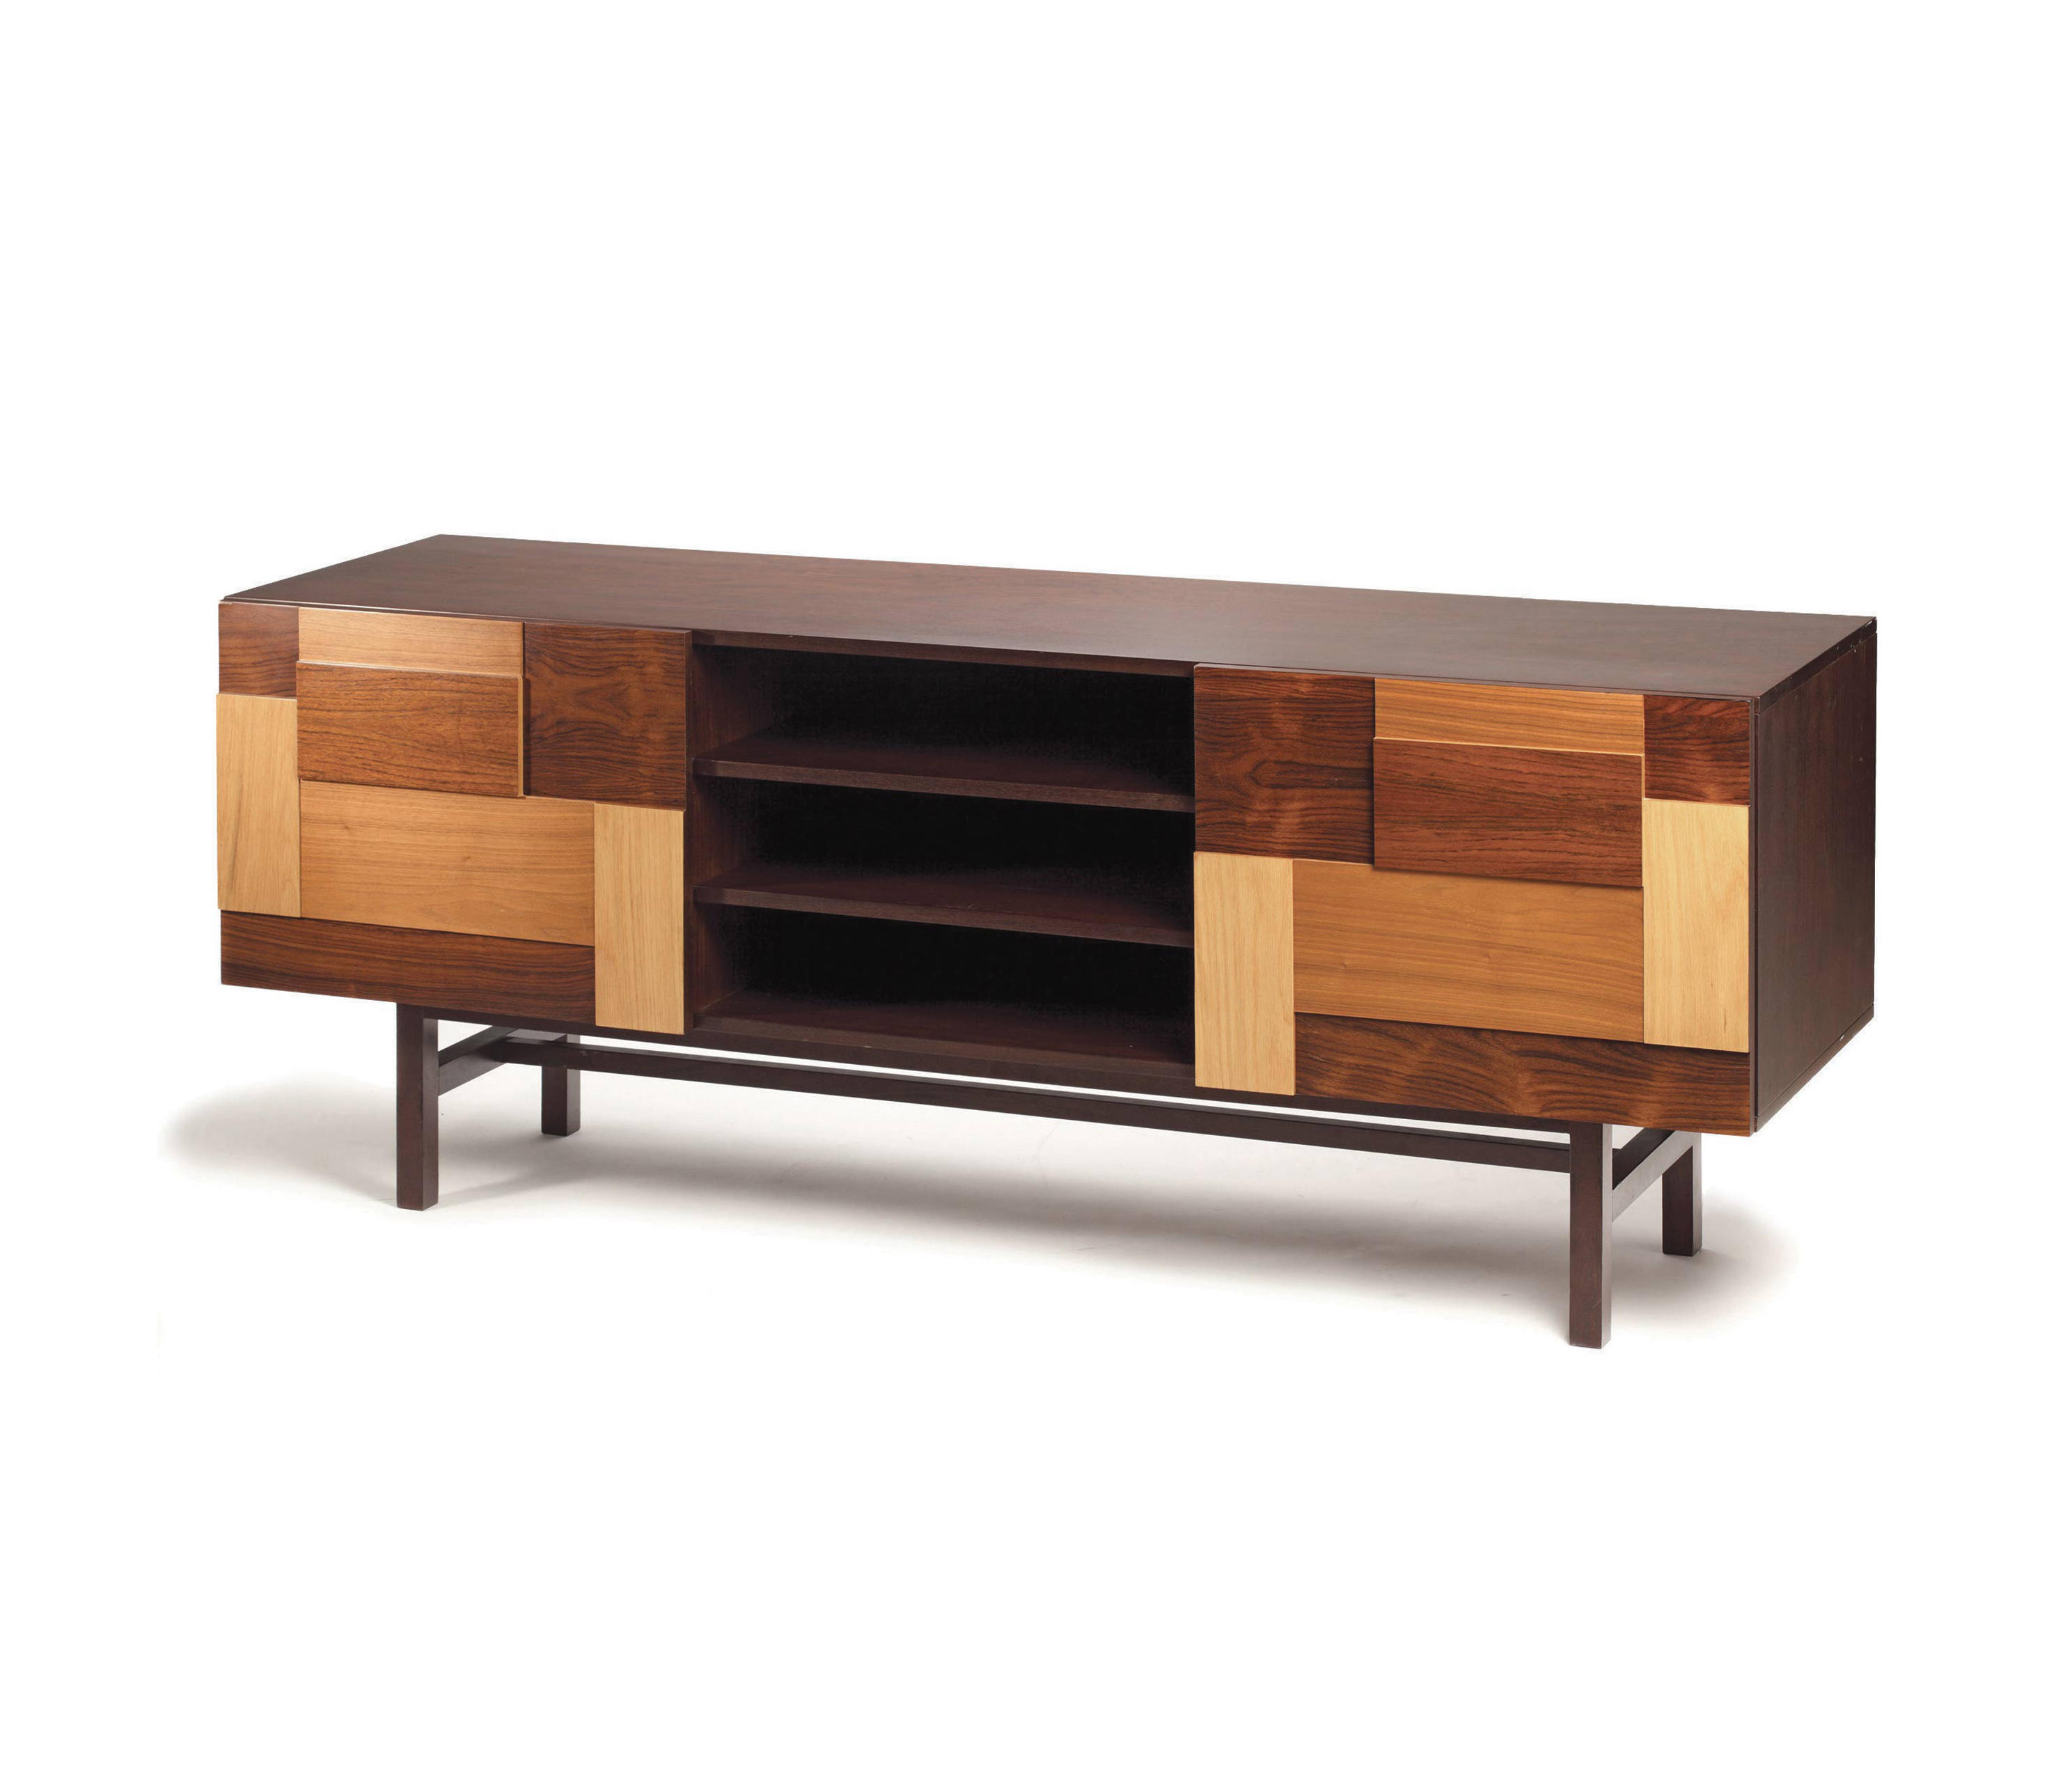 info for eccc8 1f38e FORM SIDEBOARD - Sideboards from Mambo Unlimited Ideas ...